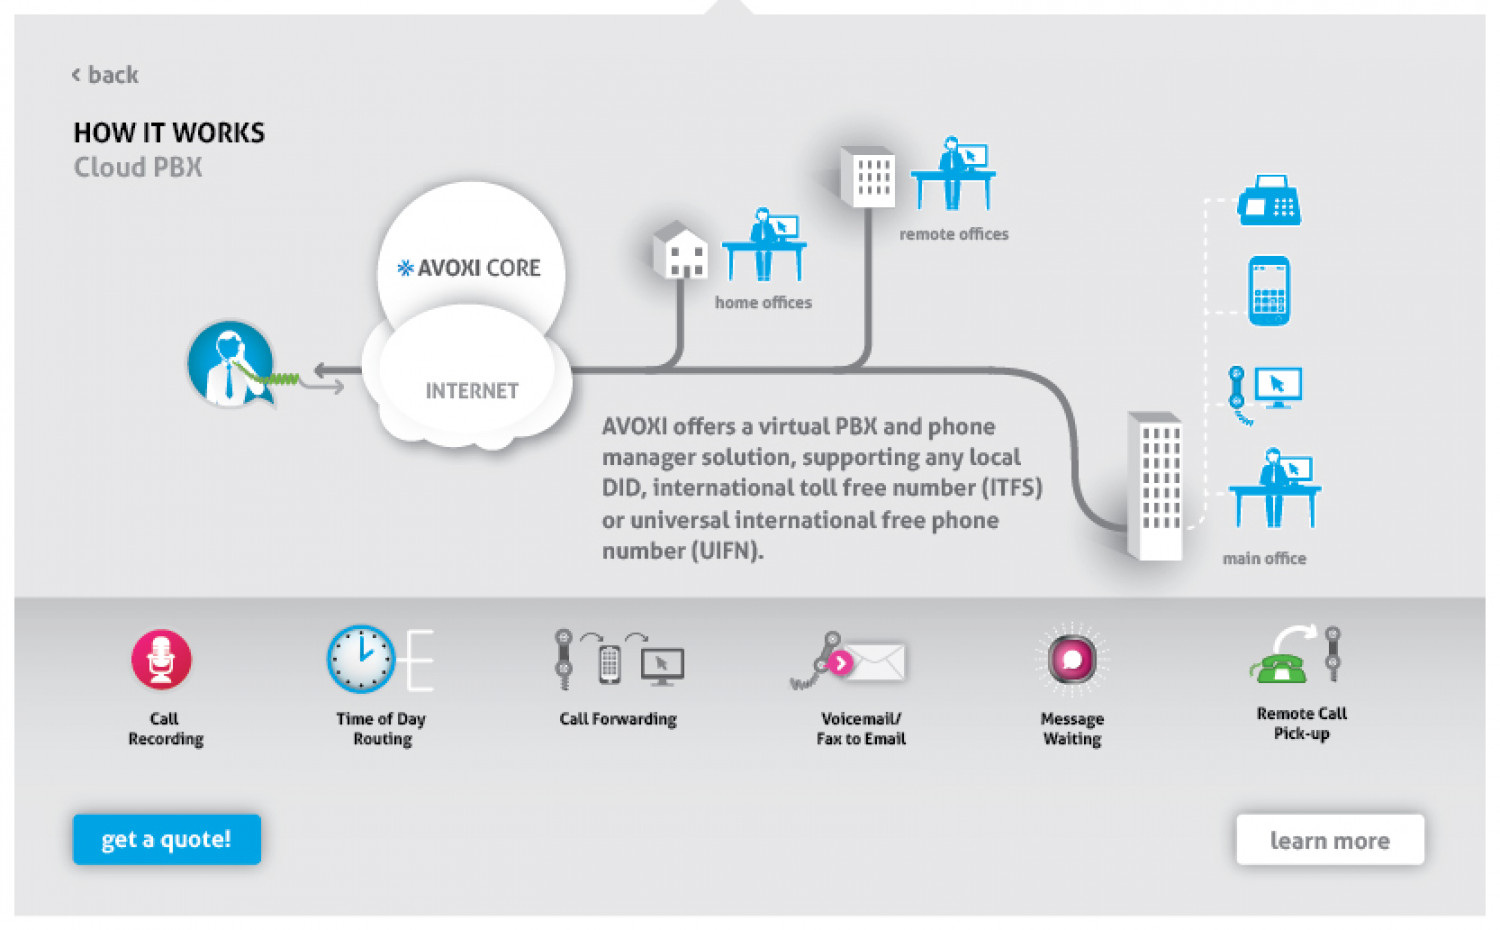 Cloud PBX Infographic